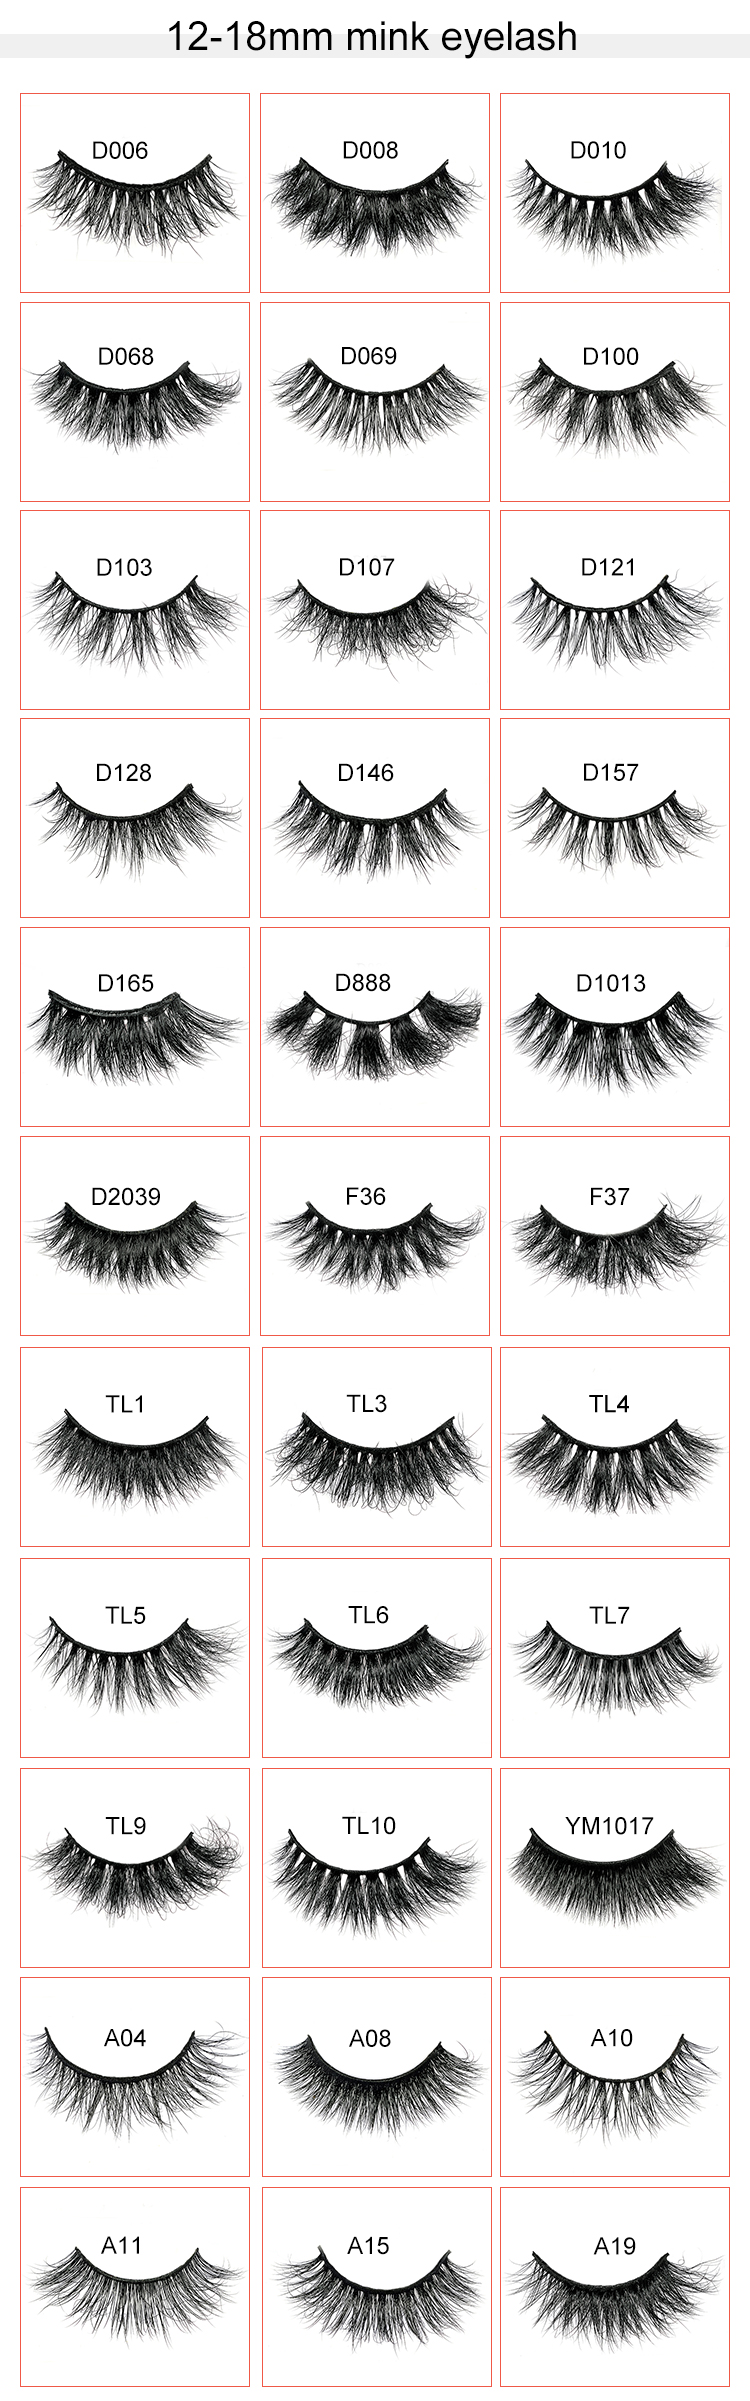 Wholesale Siberian Mink Lashes Private Label Packaging Cruelty Free Lovely 3D Mink Eyelashes